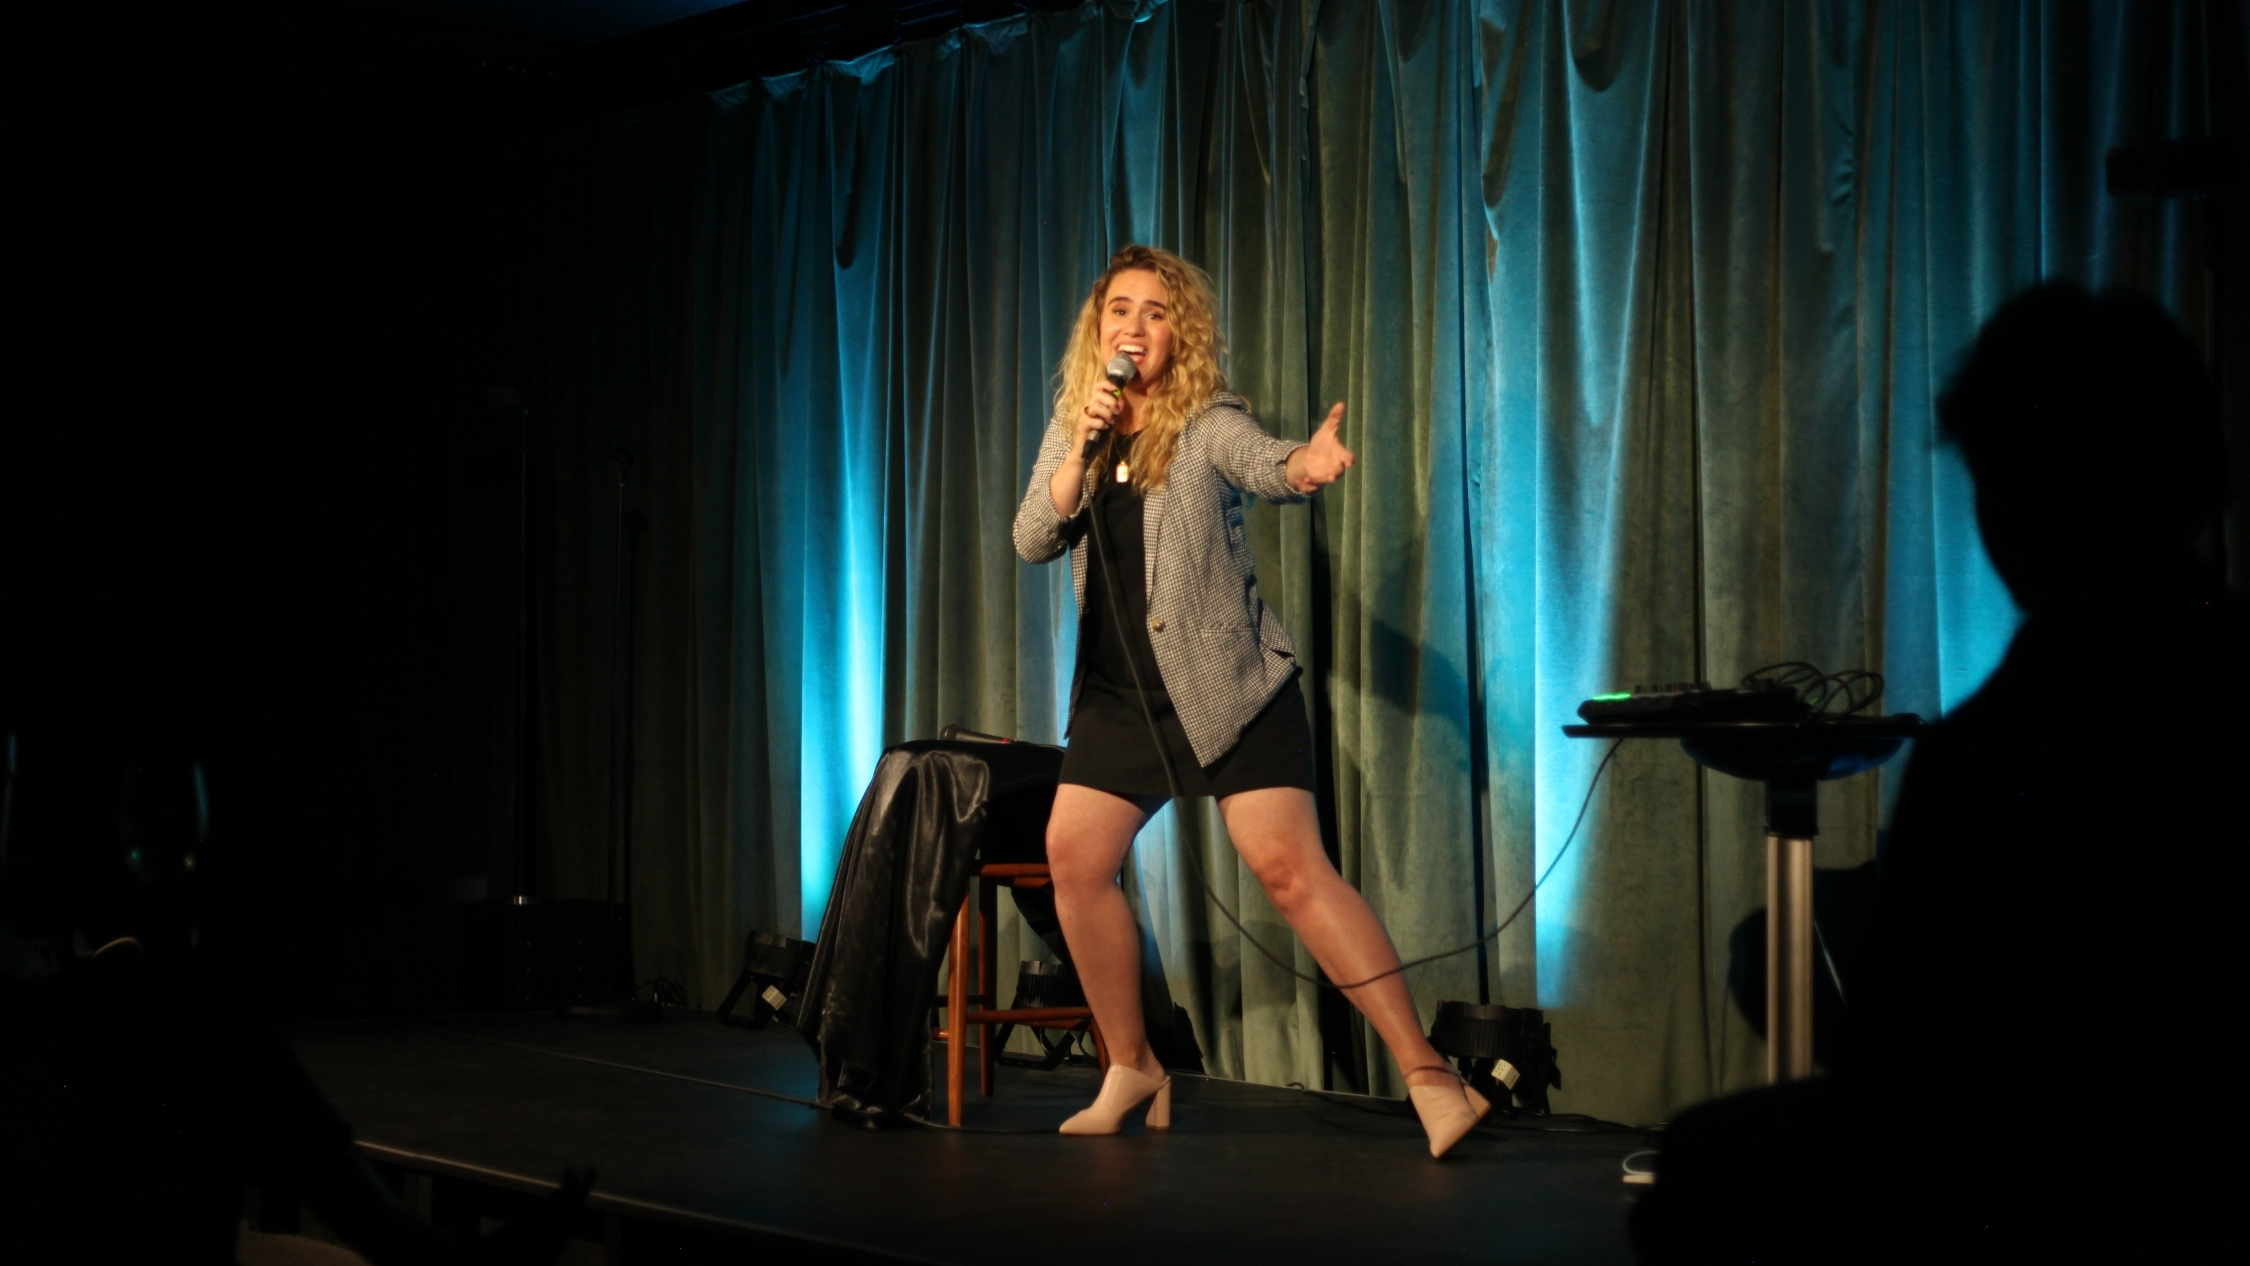 Michelle Braiser performing comedy with a microphone on stage